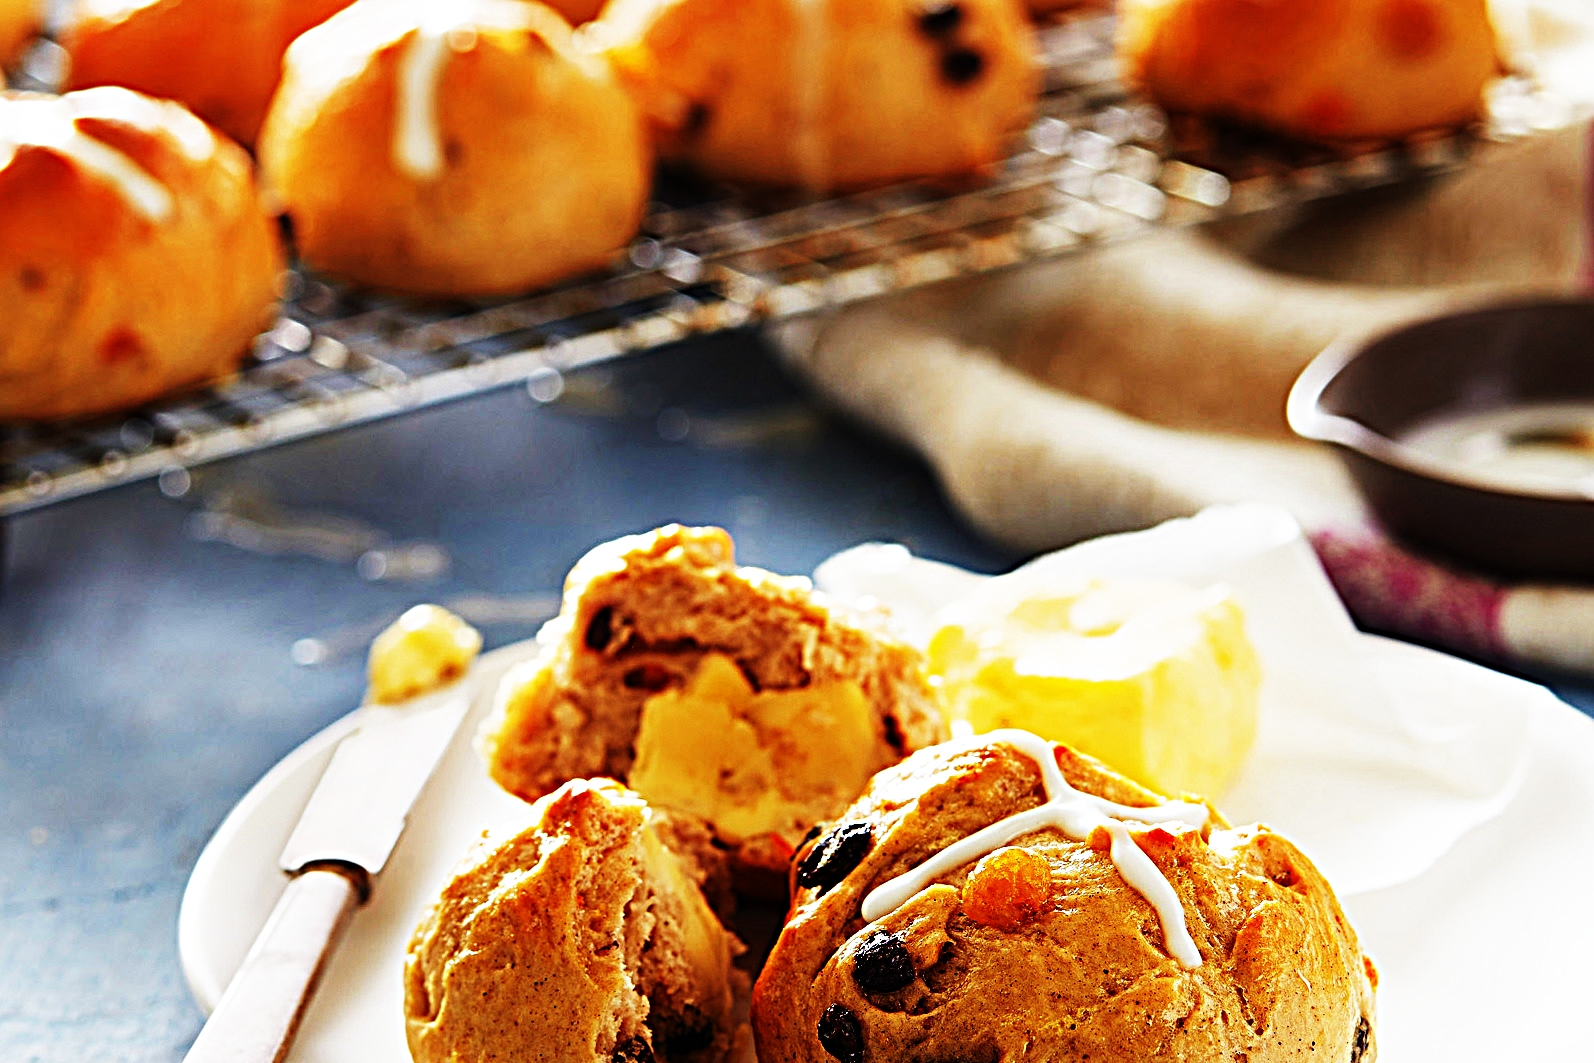 Stupid-Easy Recipe for Hot Cross Buns  (#1 Top-Rated)